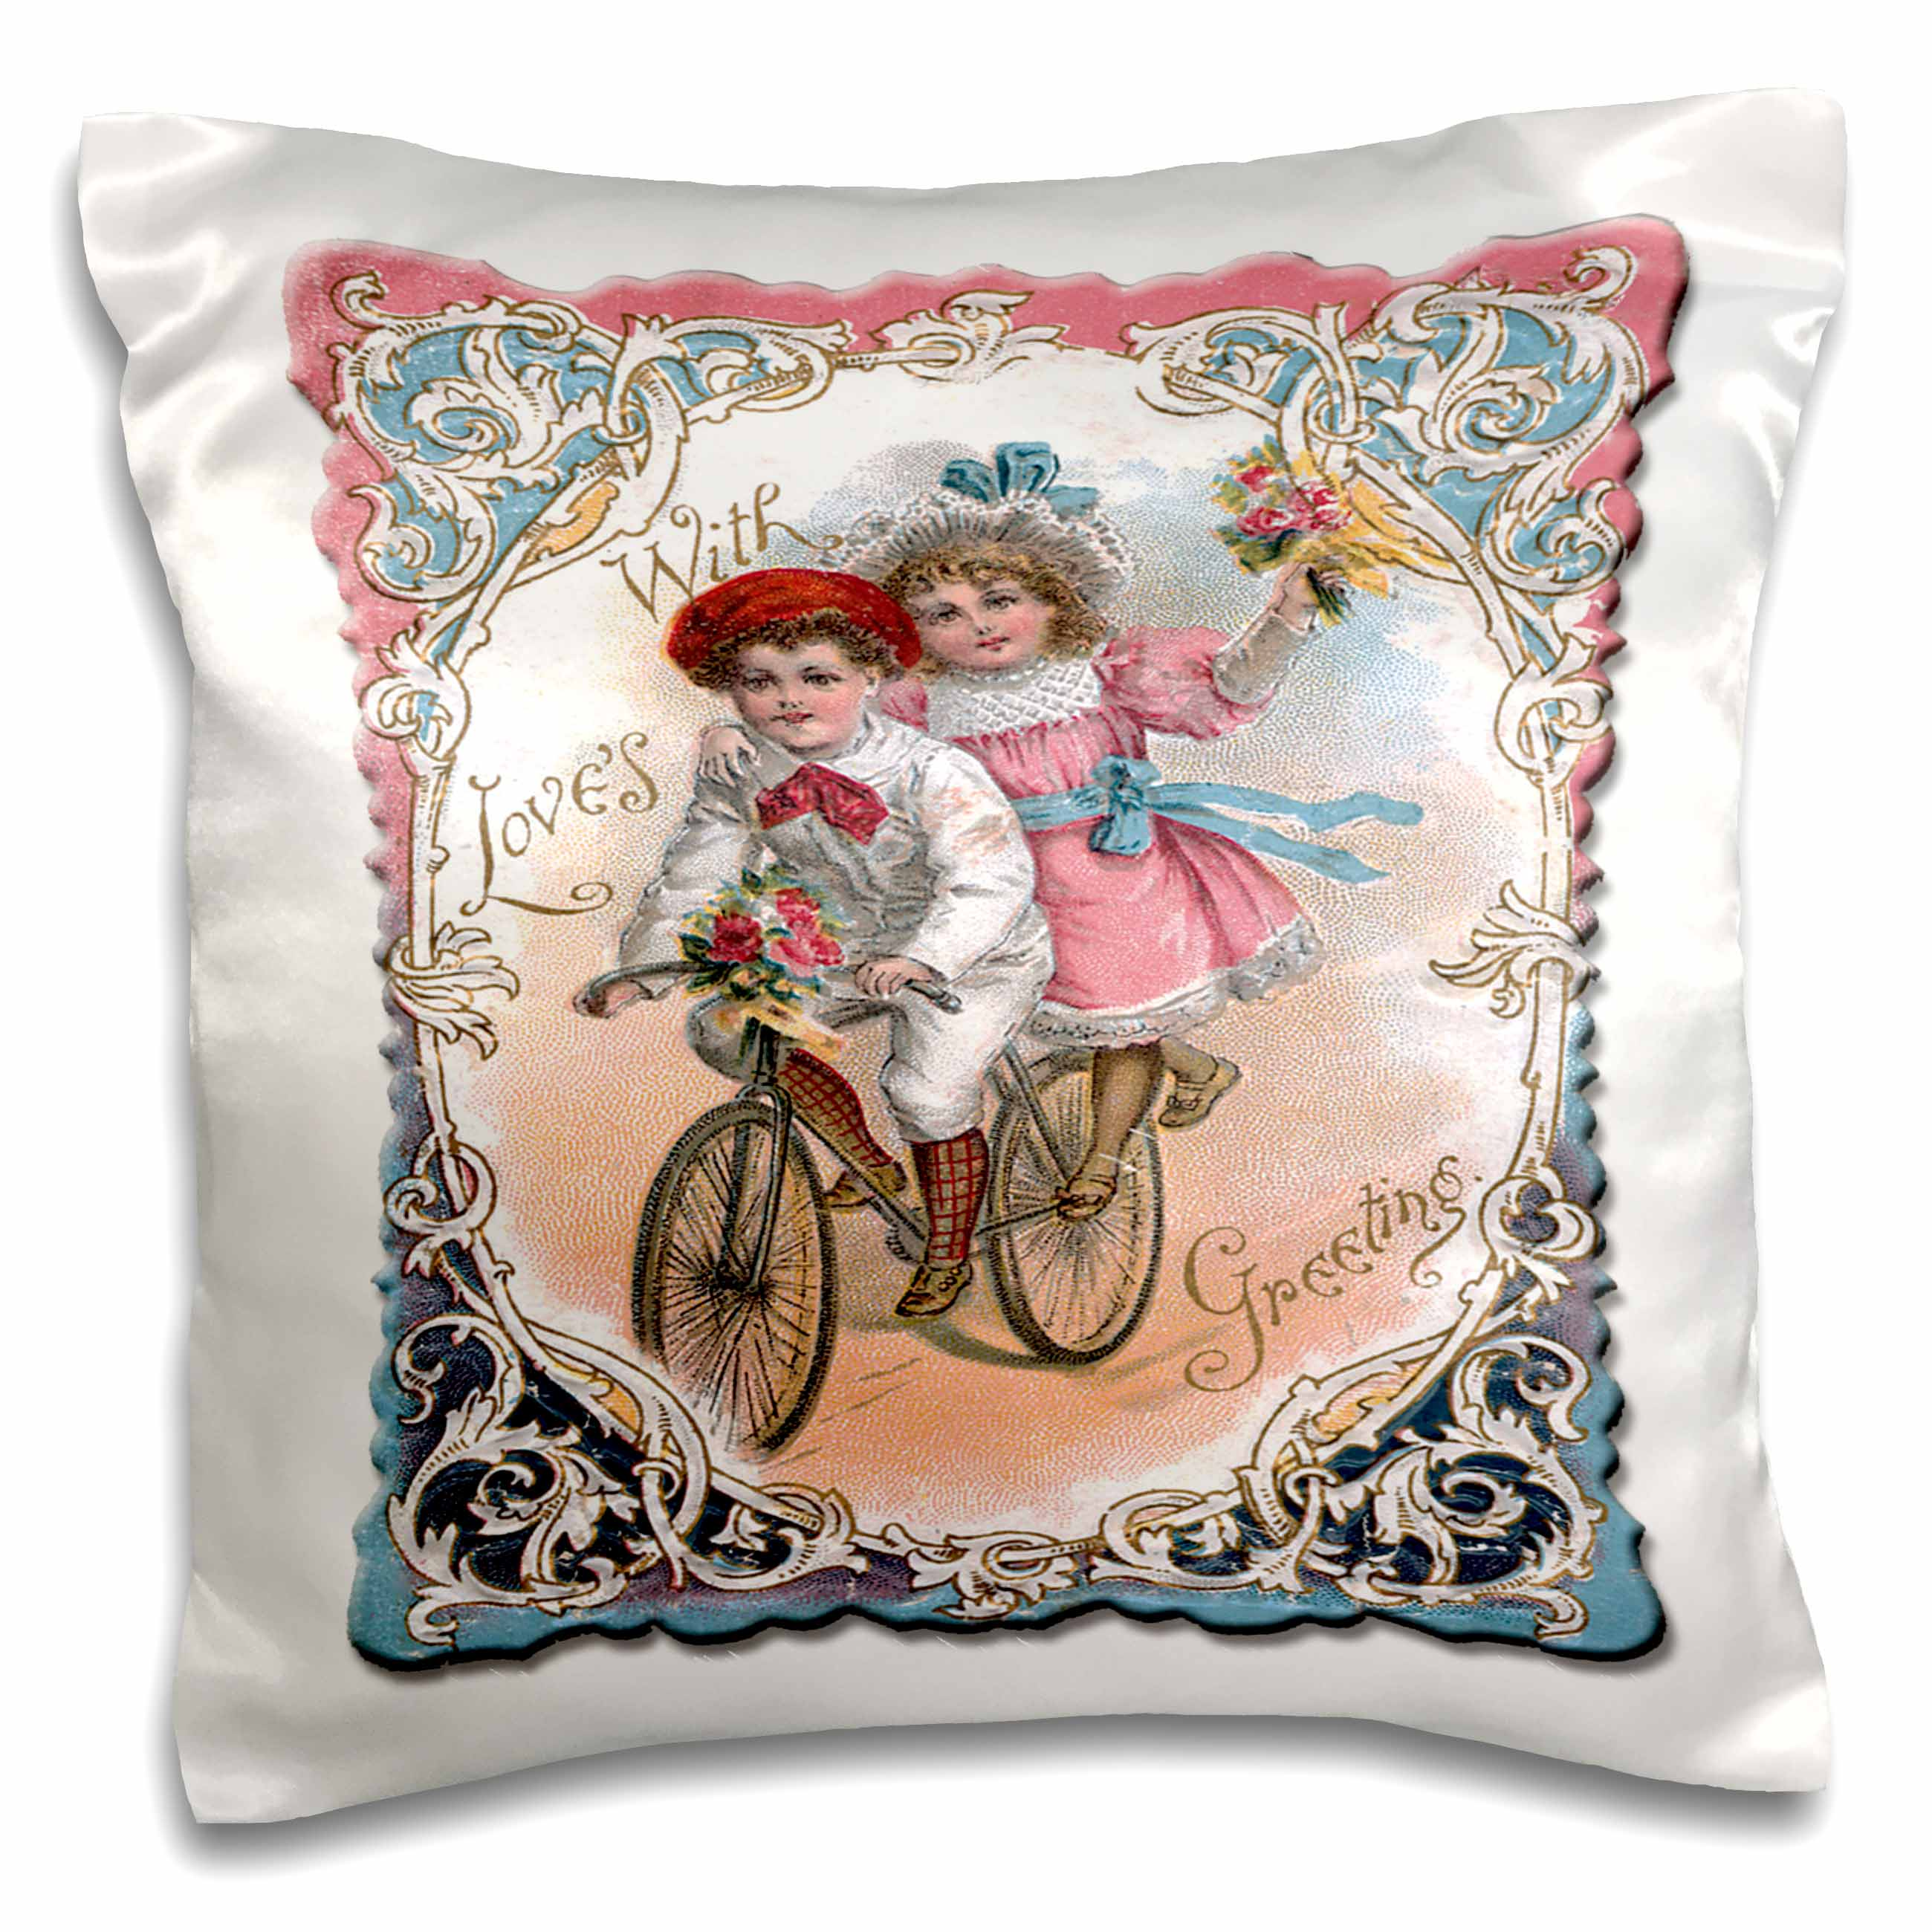 3dRose Cute Boy and Girl on a Tandem Bicycle with Ornate Victorian Frame - Pillow Case, 16 by 16-inch